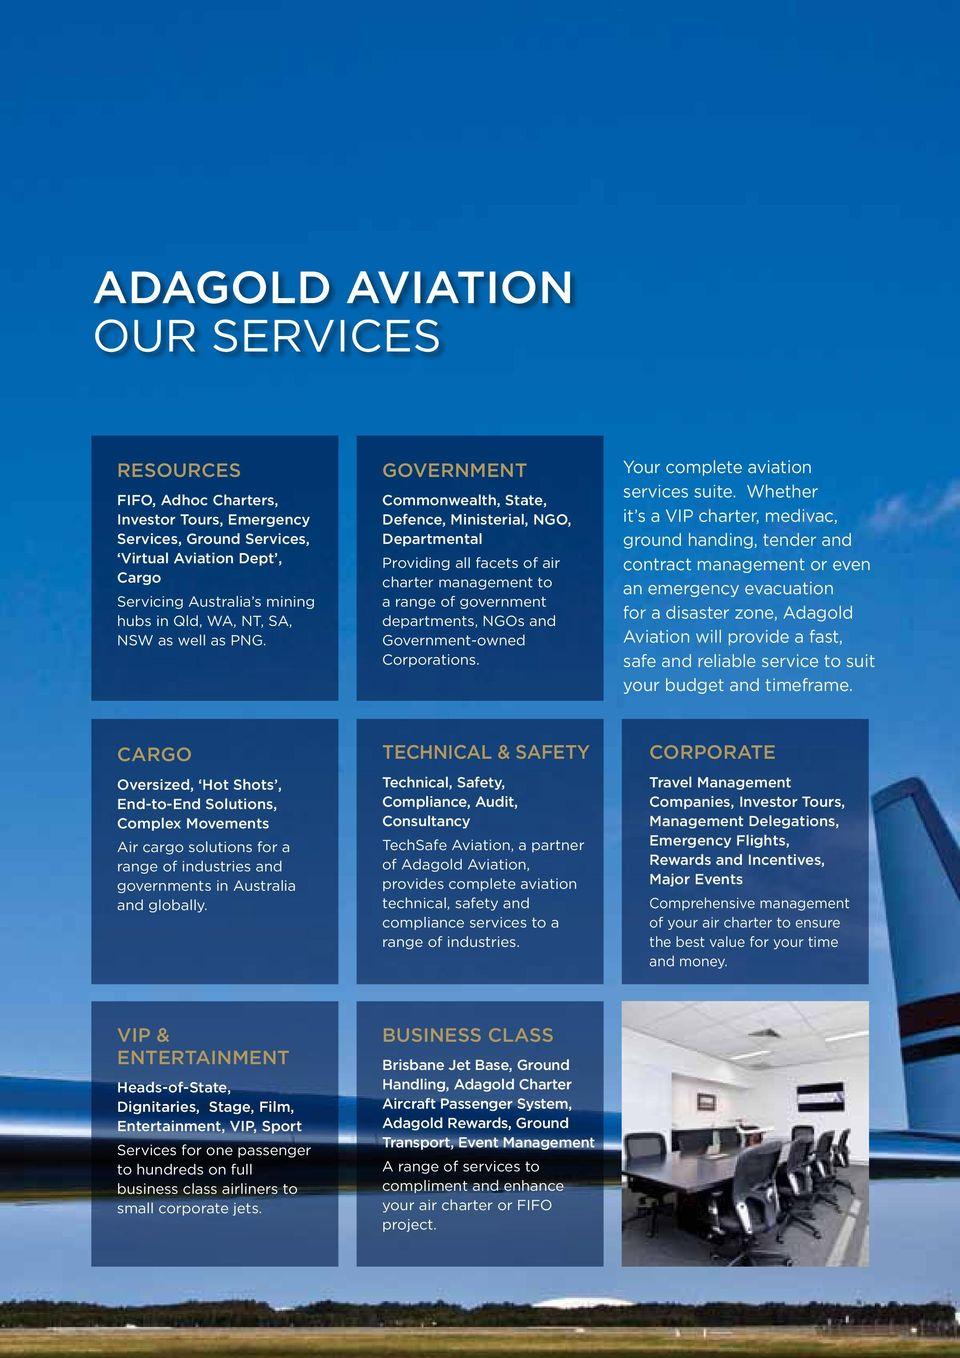 government Commonwealth, State, Defence, Ministerial, NGO, Departmental Providing all facets of air charter management to a range of government departments, NGOs and Government-owned Corporations.